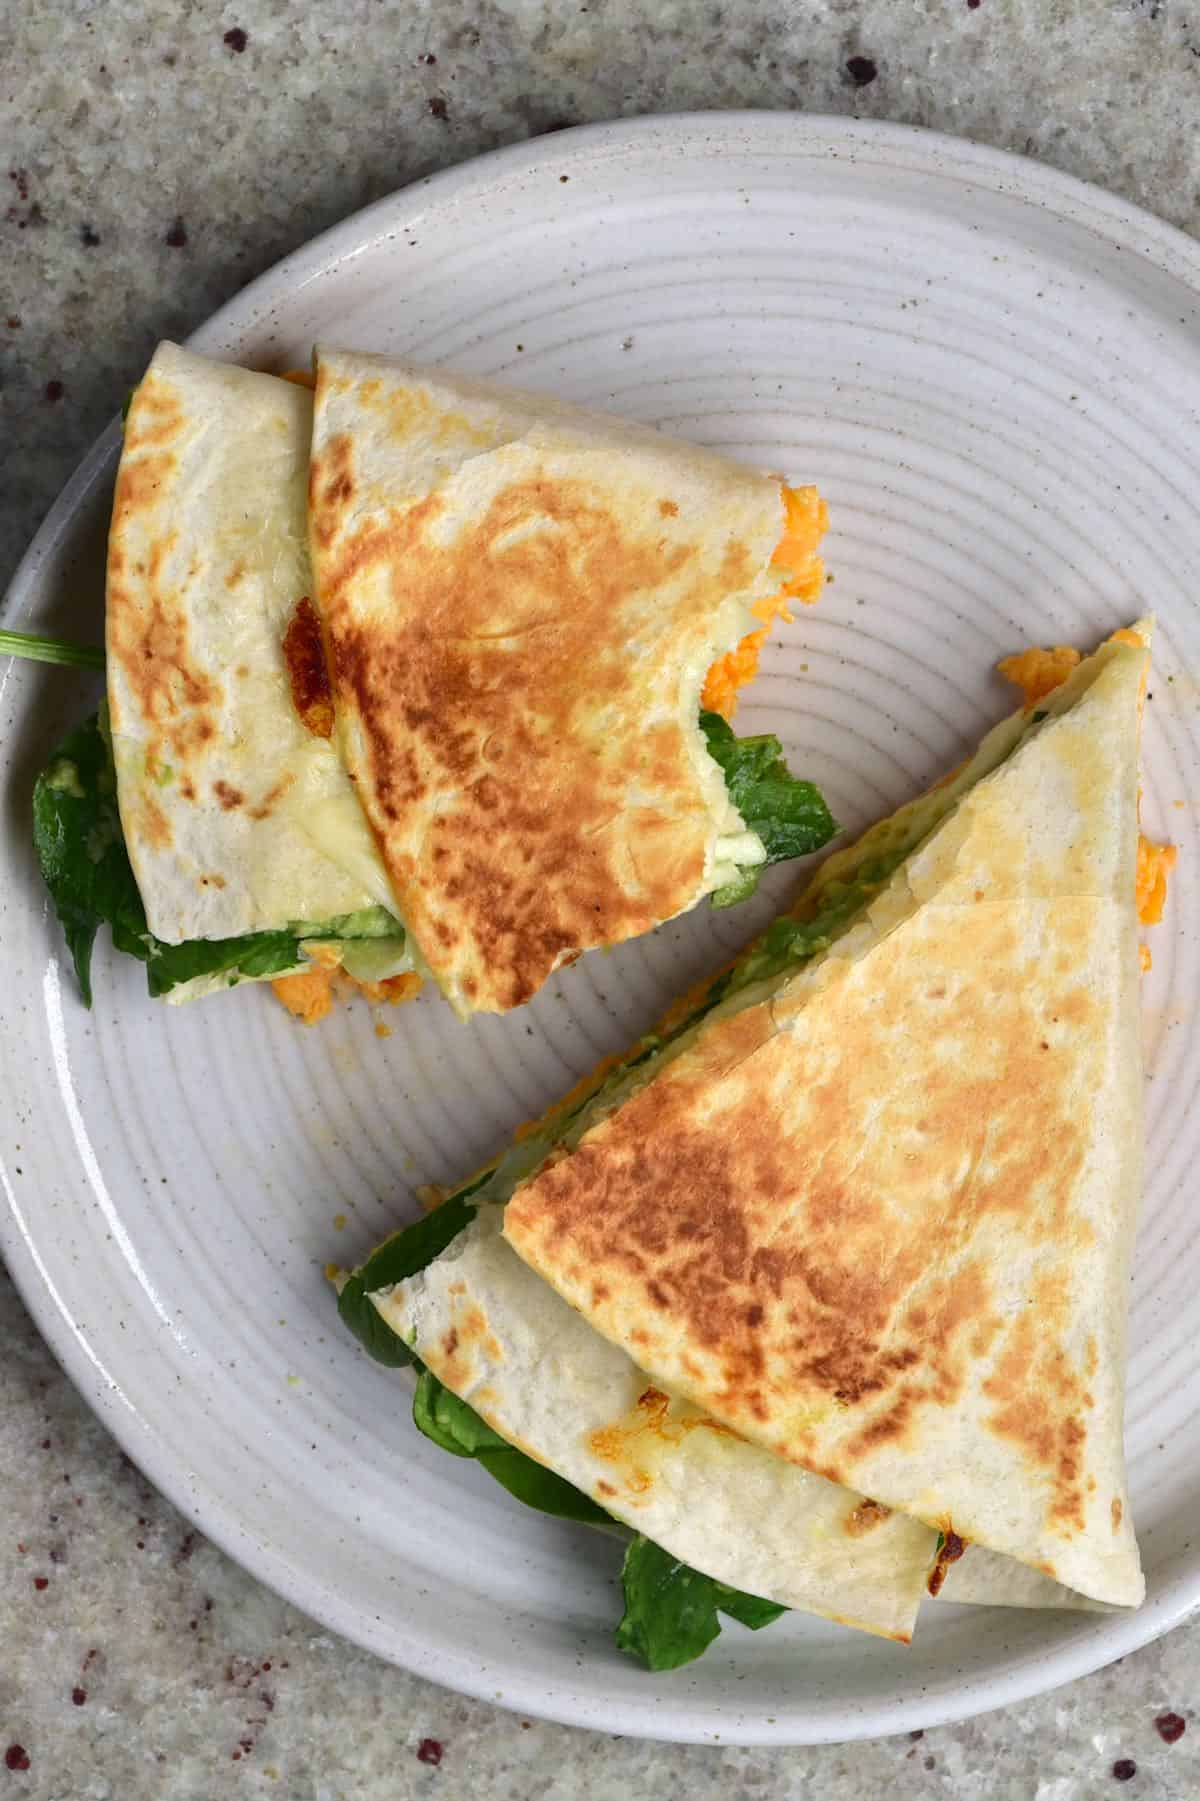 Tortilla wrap with spinach and scrambled eggs cut in two in a plate